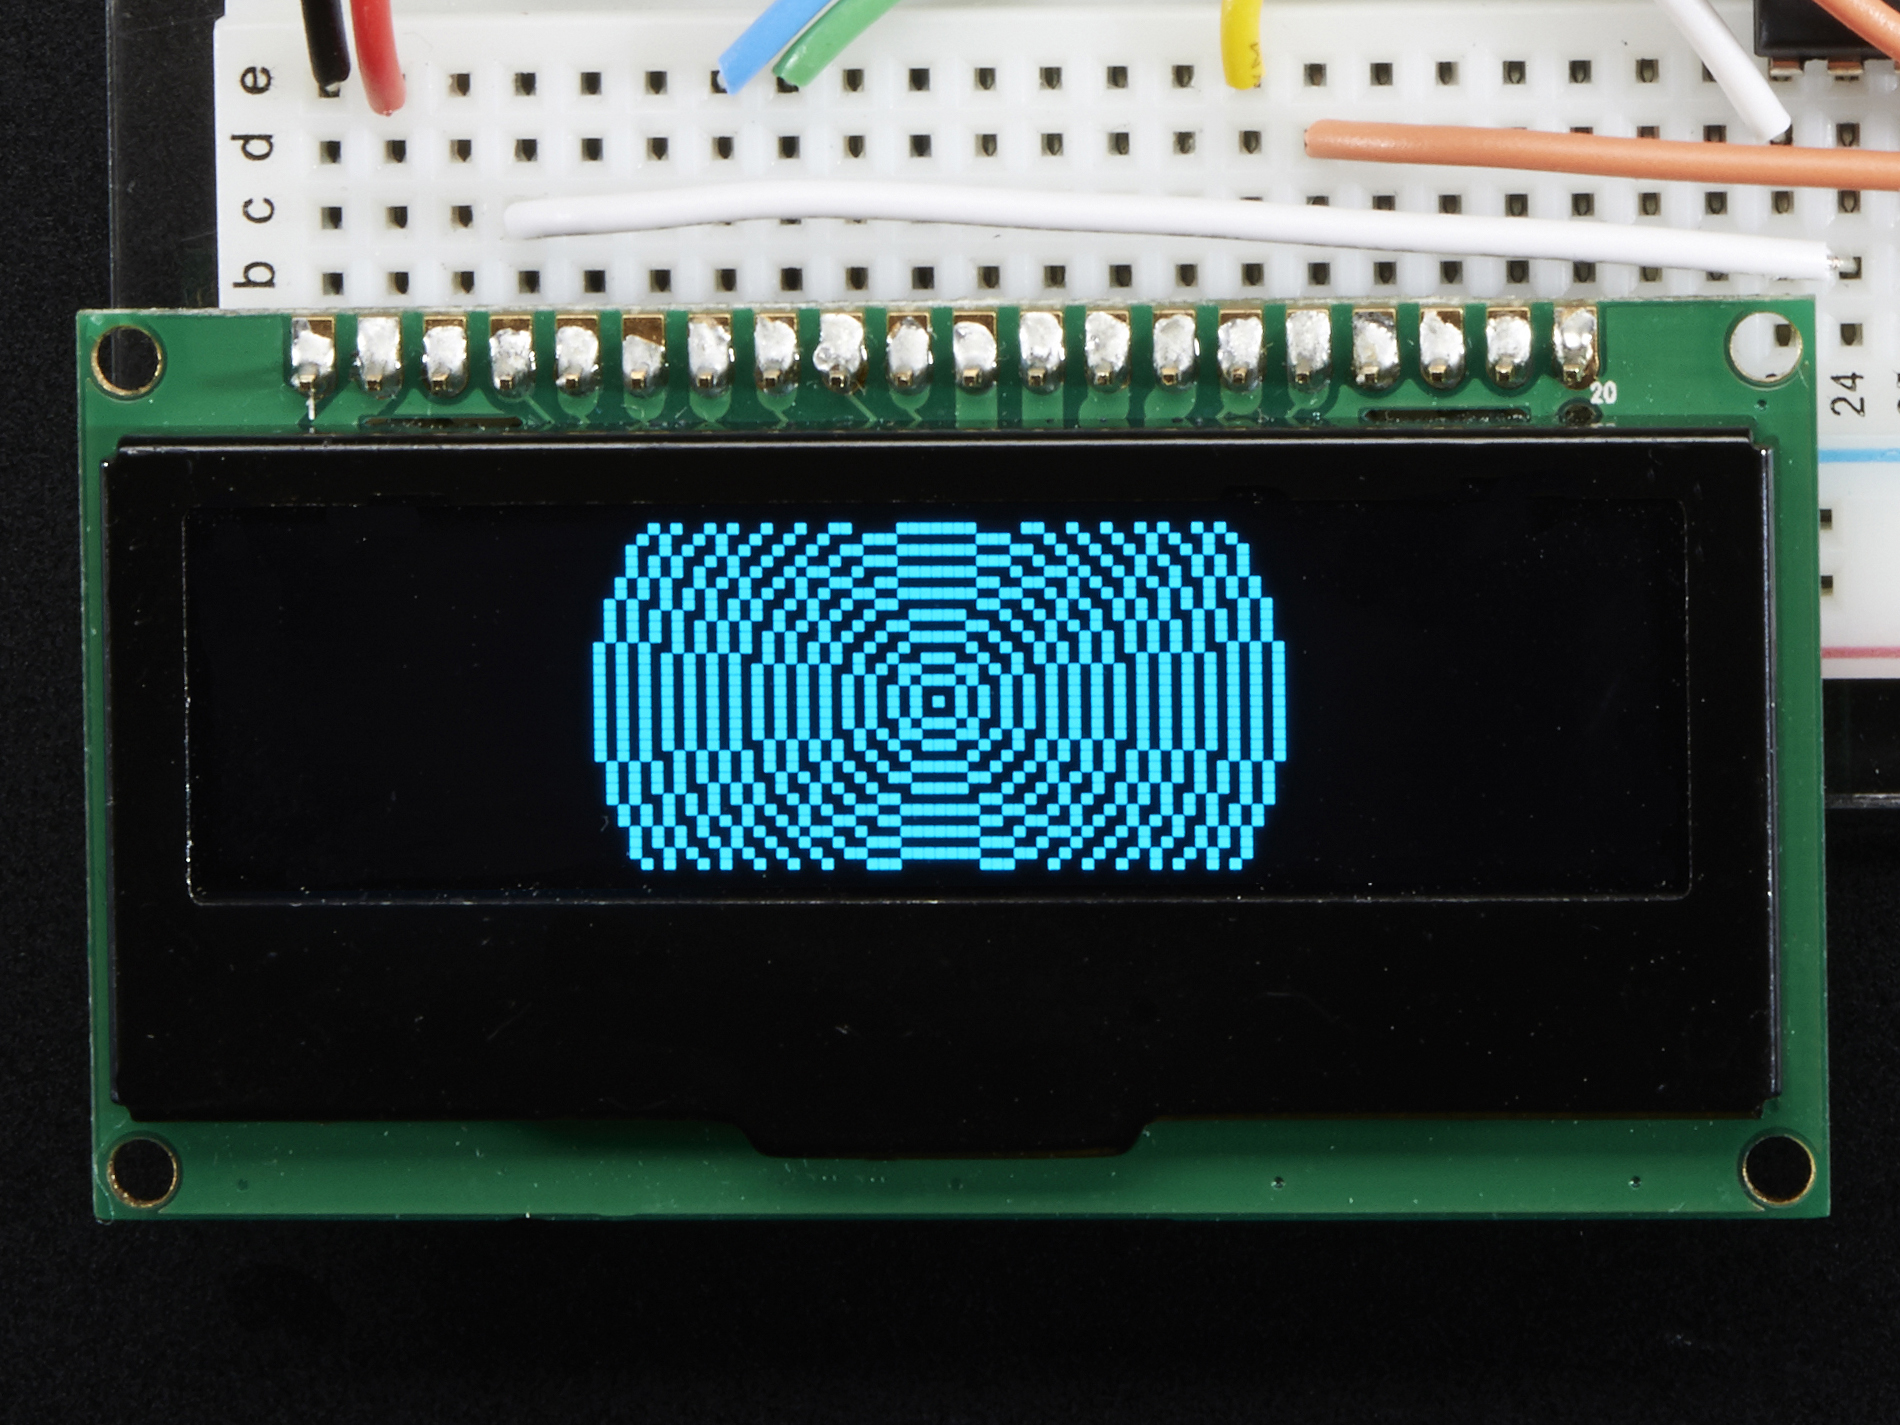 adafruit_products_2675_screen_05_CROP.jpg